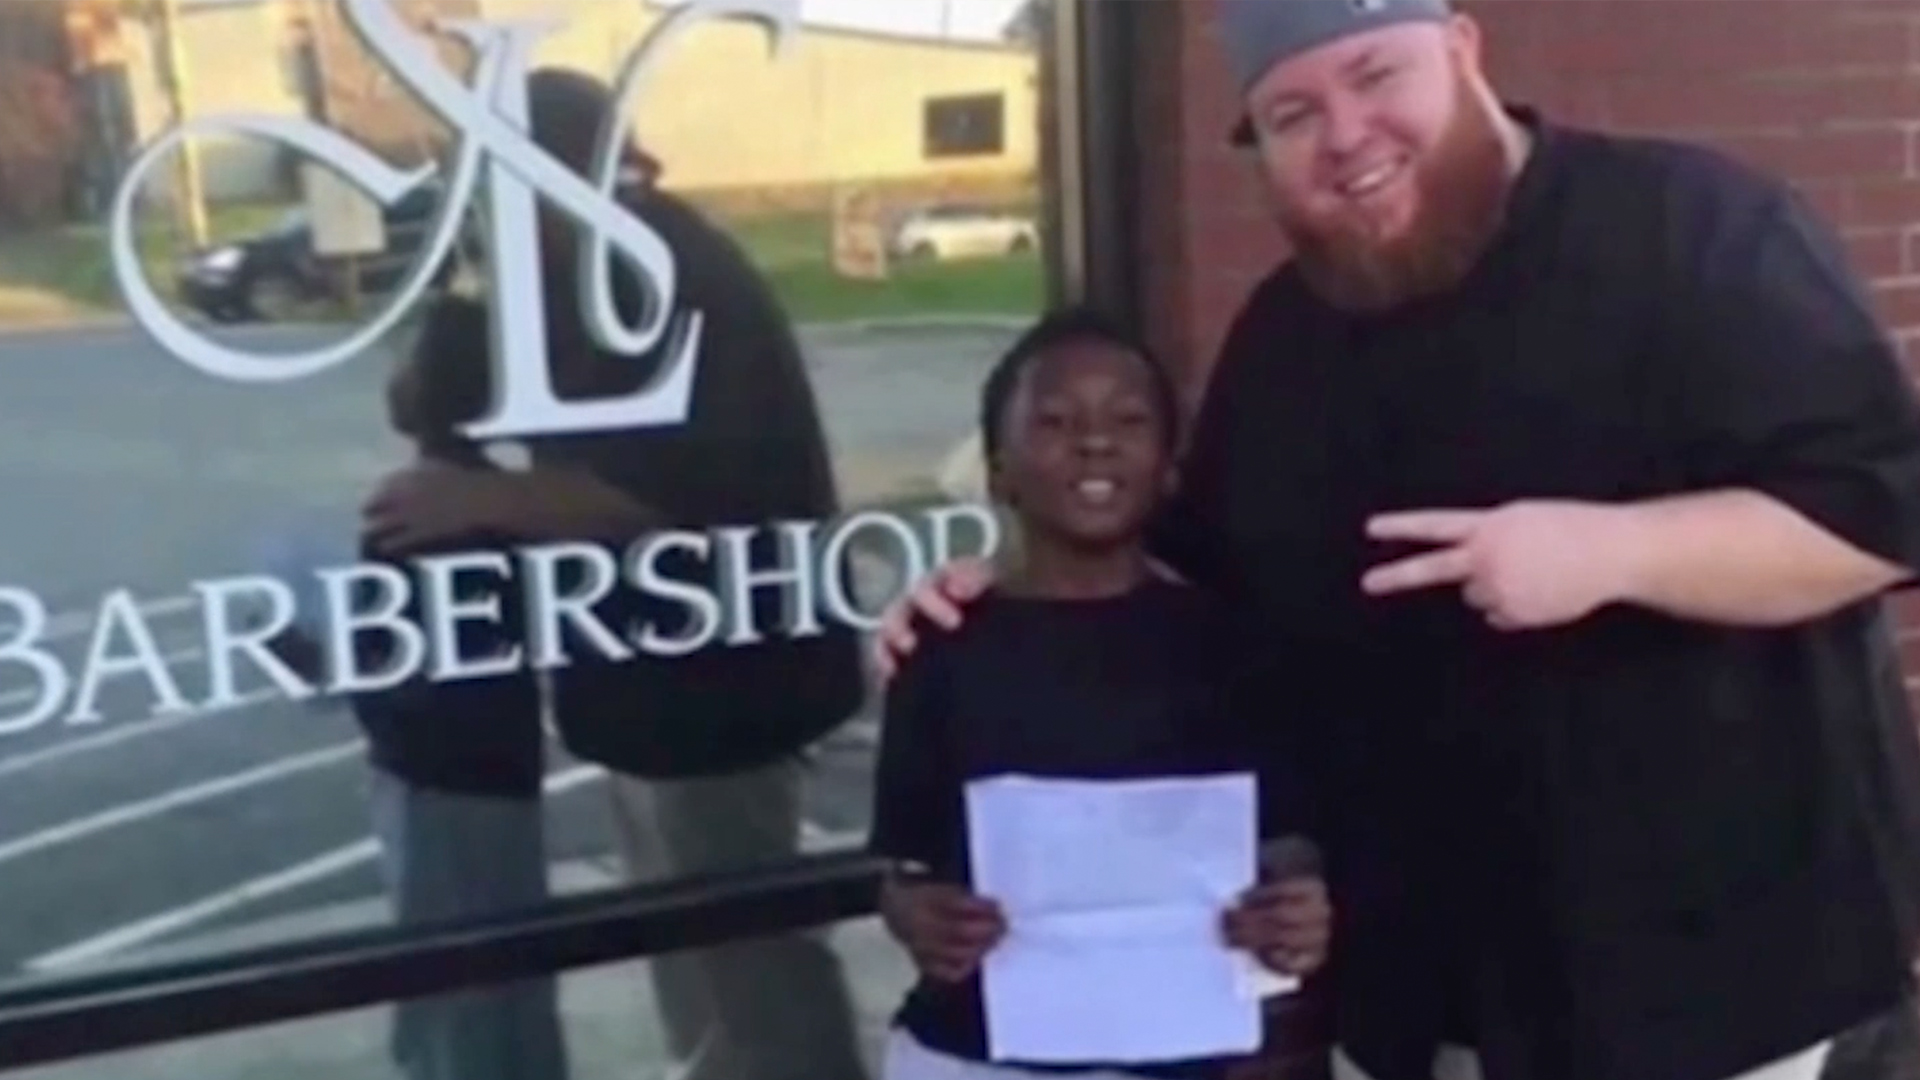 North Carolina Barber Promises Haircuts for Life to 9-Year-Old Who Made Straight A's: 'I Believed That He Believed in Me'